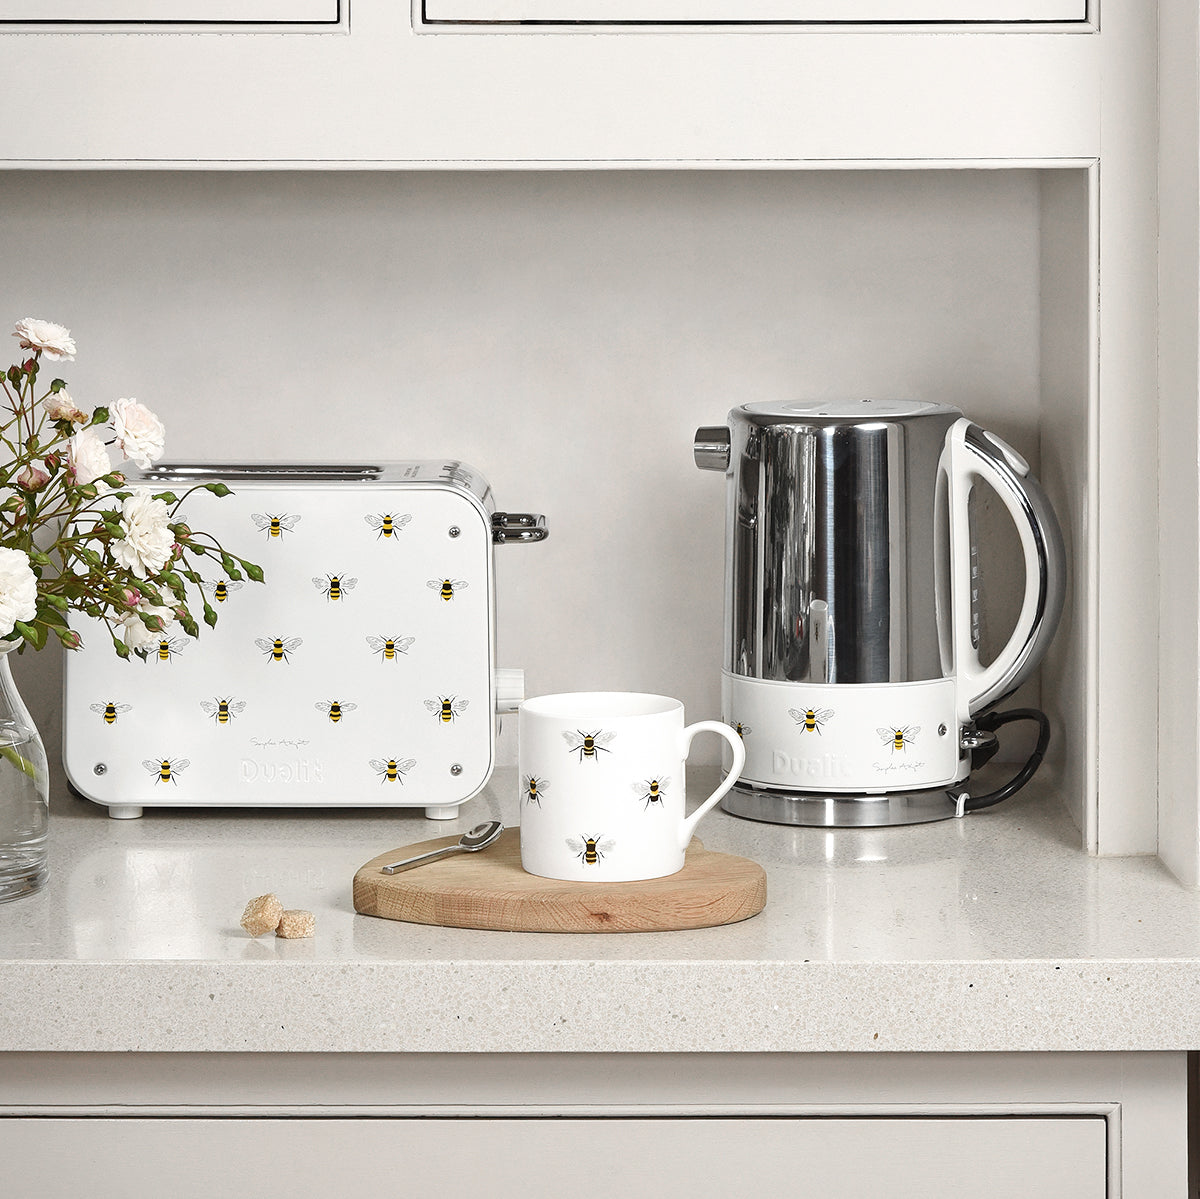 Sophie Allport Bees Toaster and Kettle